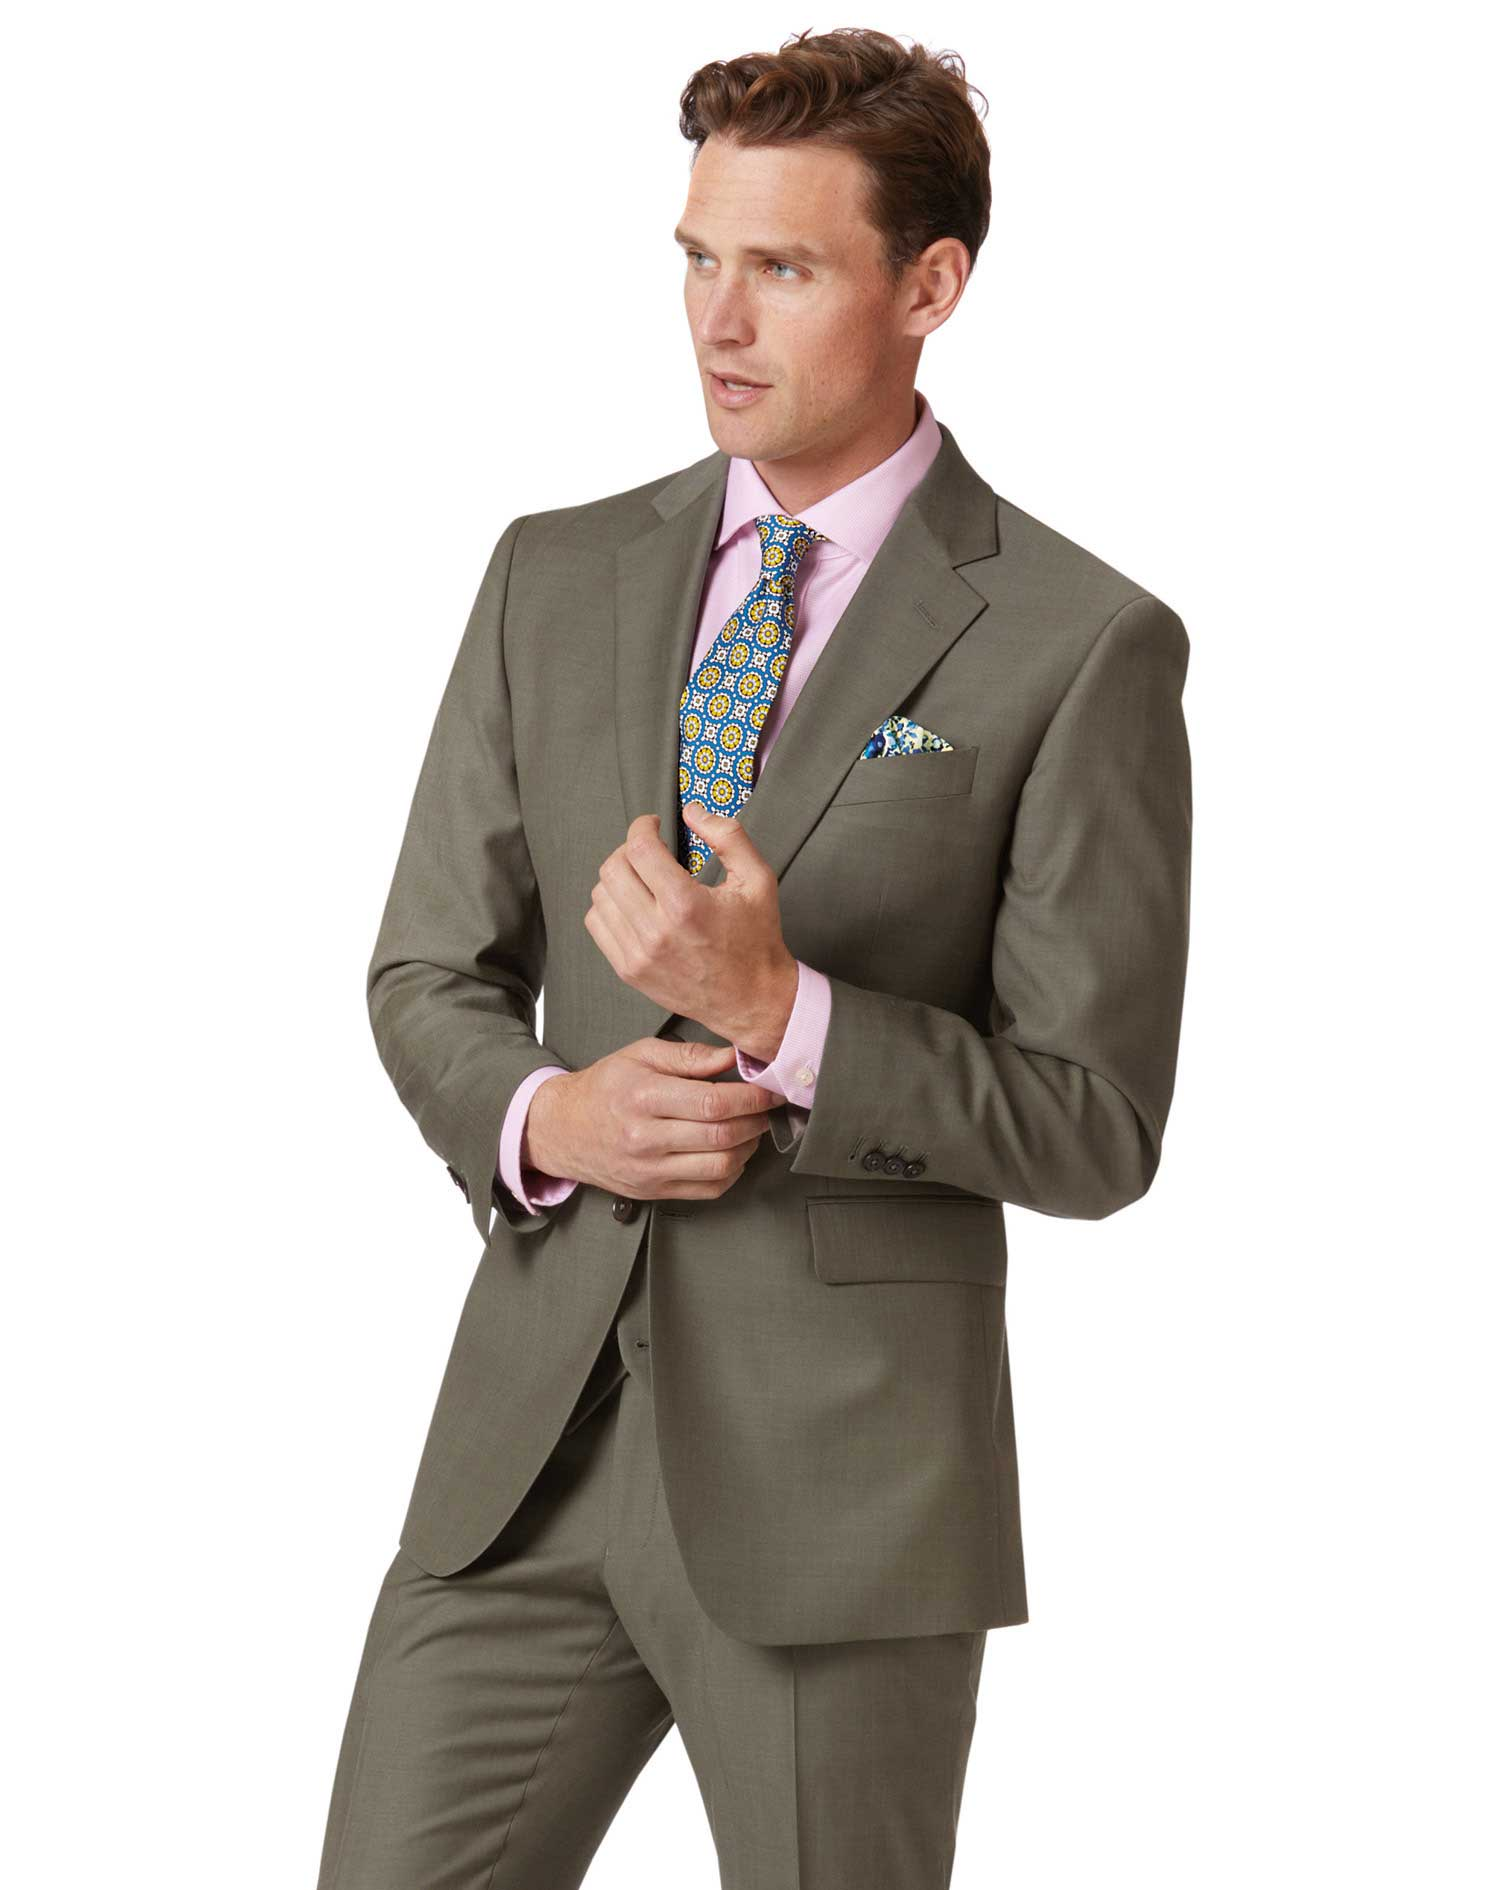 Olive Slim Fit Twill Business Suit Wool Jacket Size 40 Regular by Charles Tyrwhitt